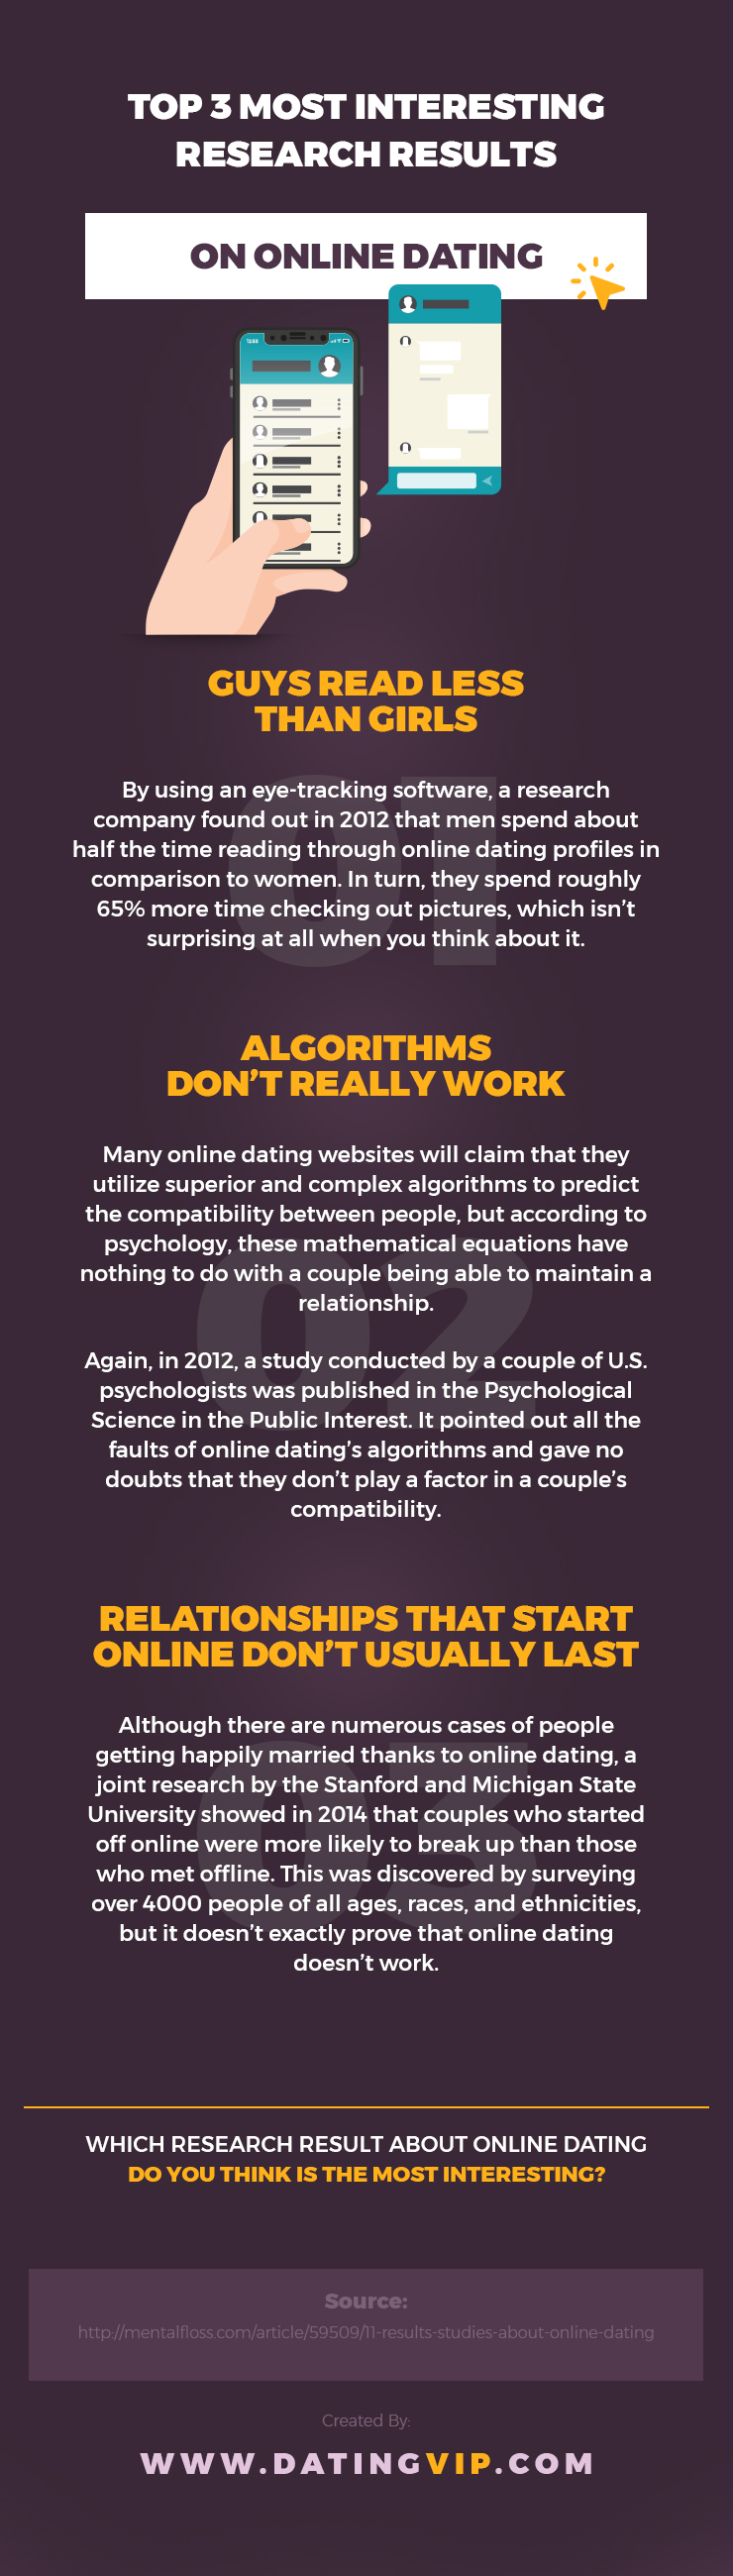 Top 3 Most Interesting Research Results on Online Dating